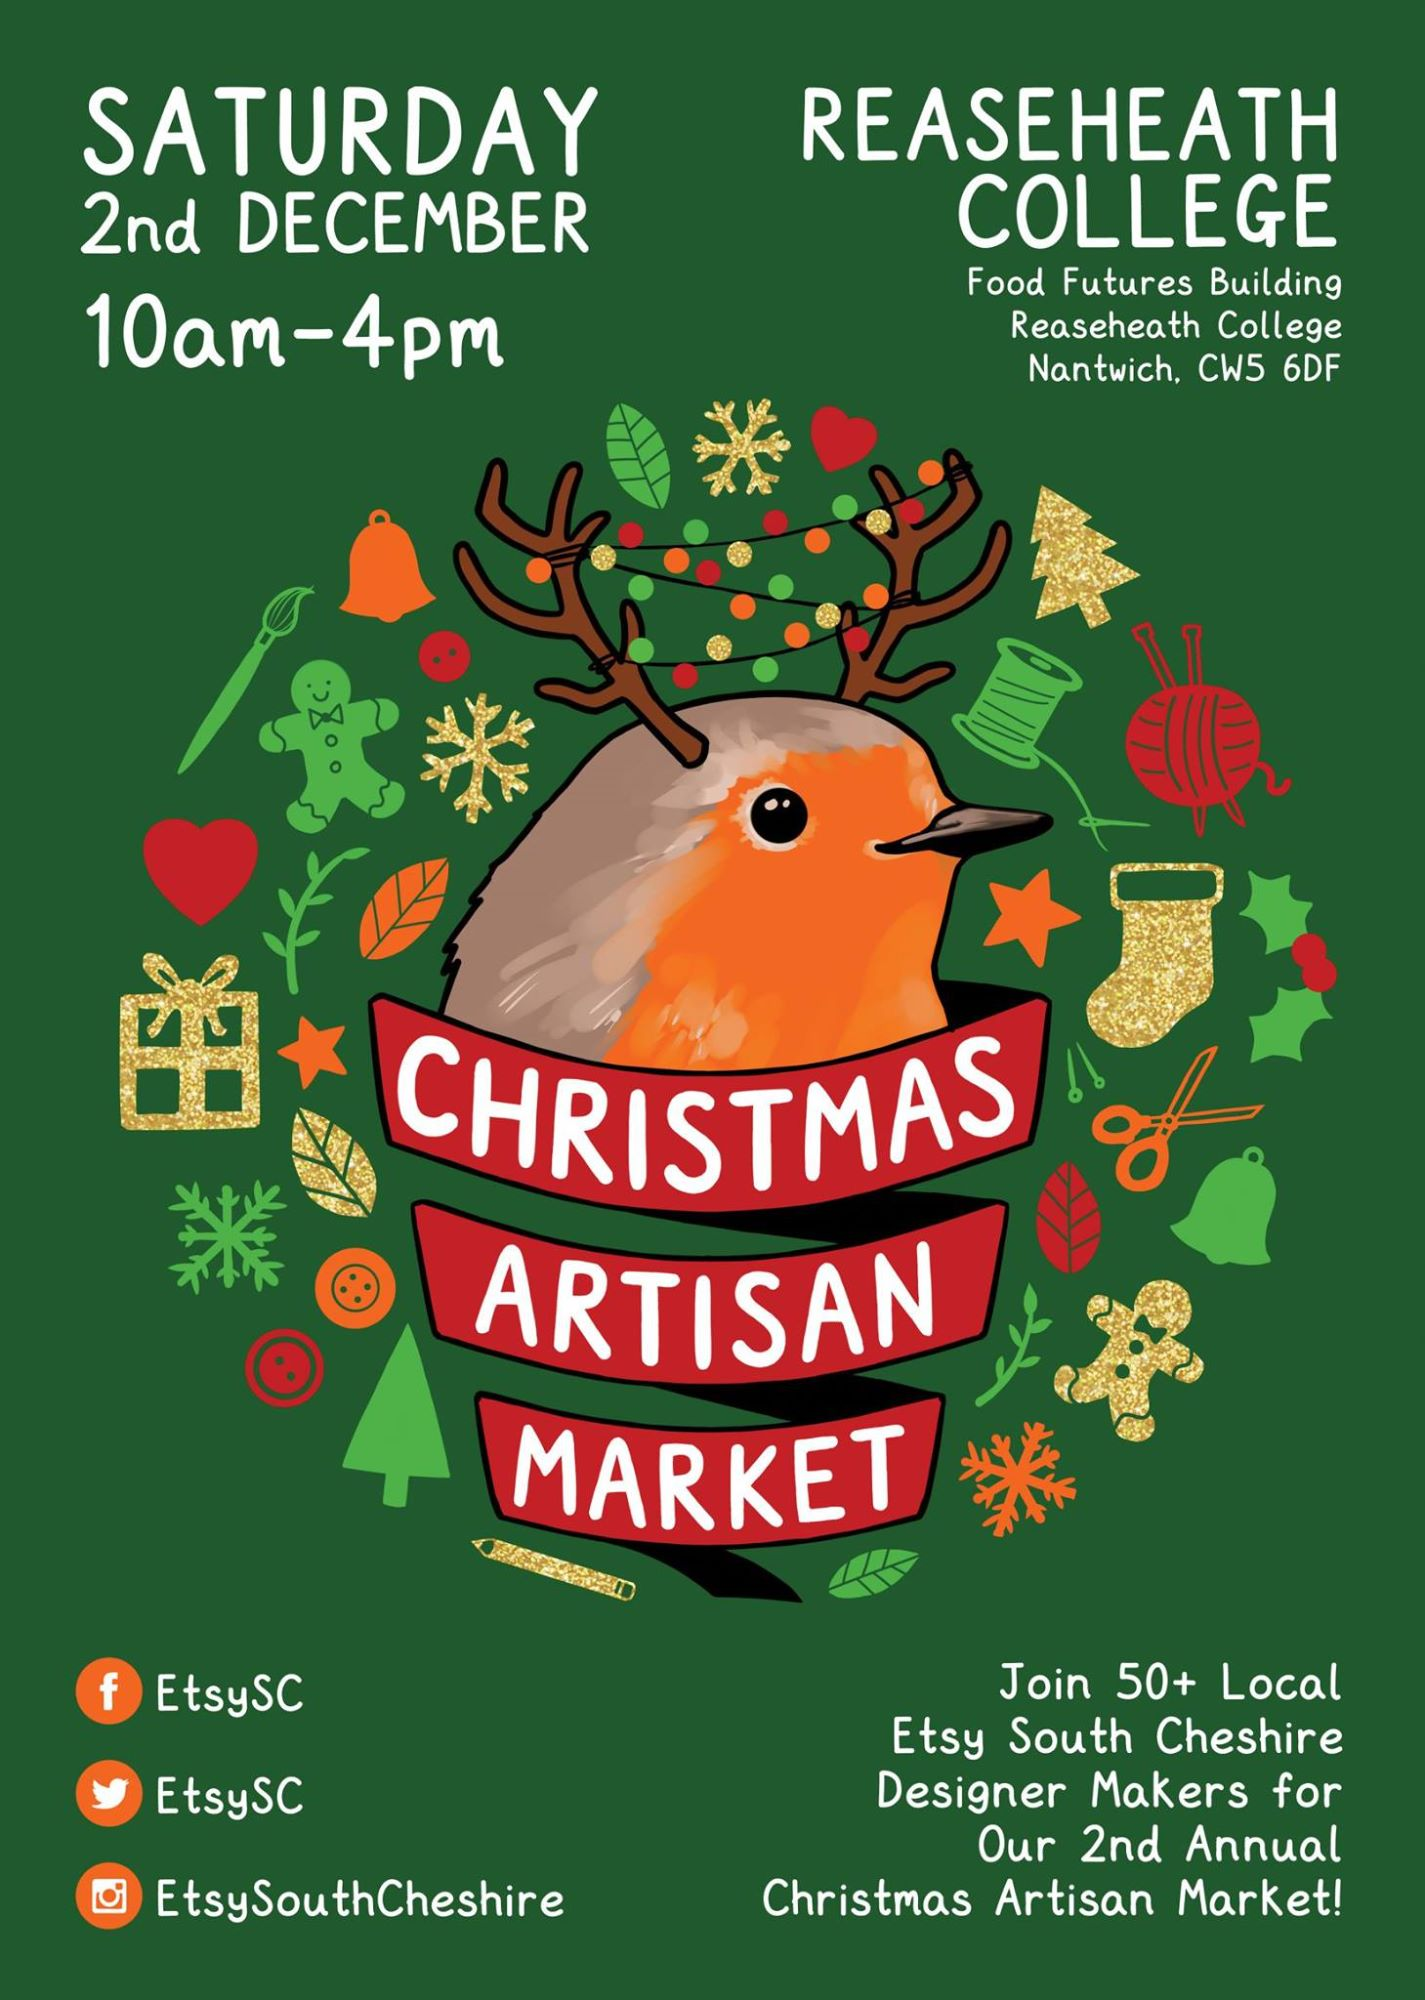 Etsy Made Local Nantwich, Reaseheath College, Etsy South Cheshire, Christmas Artisan Market